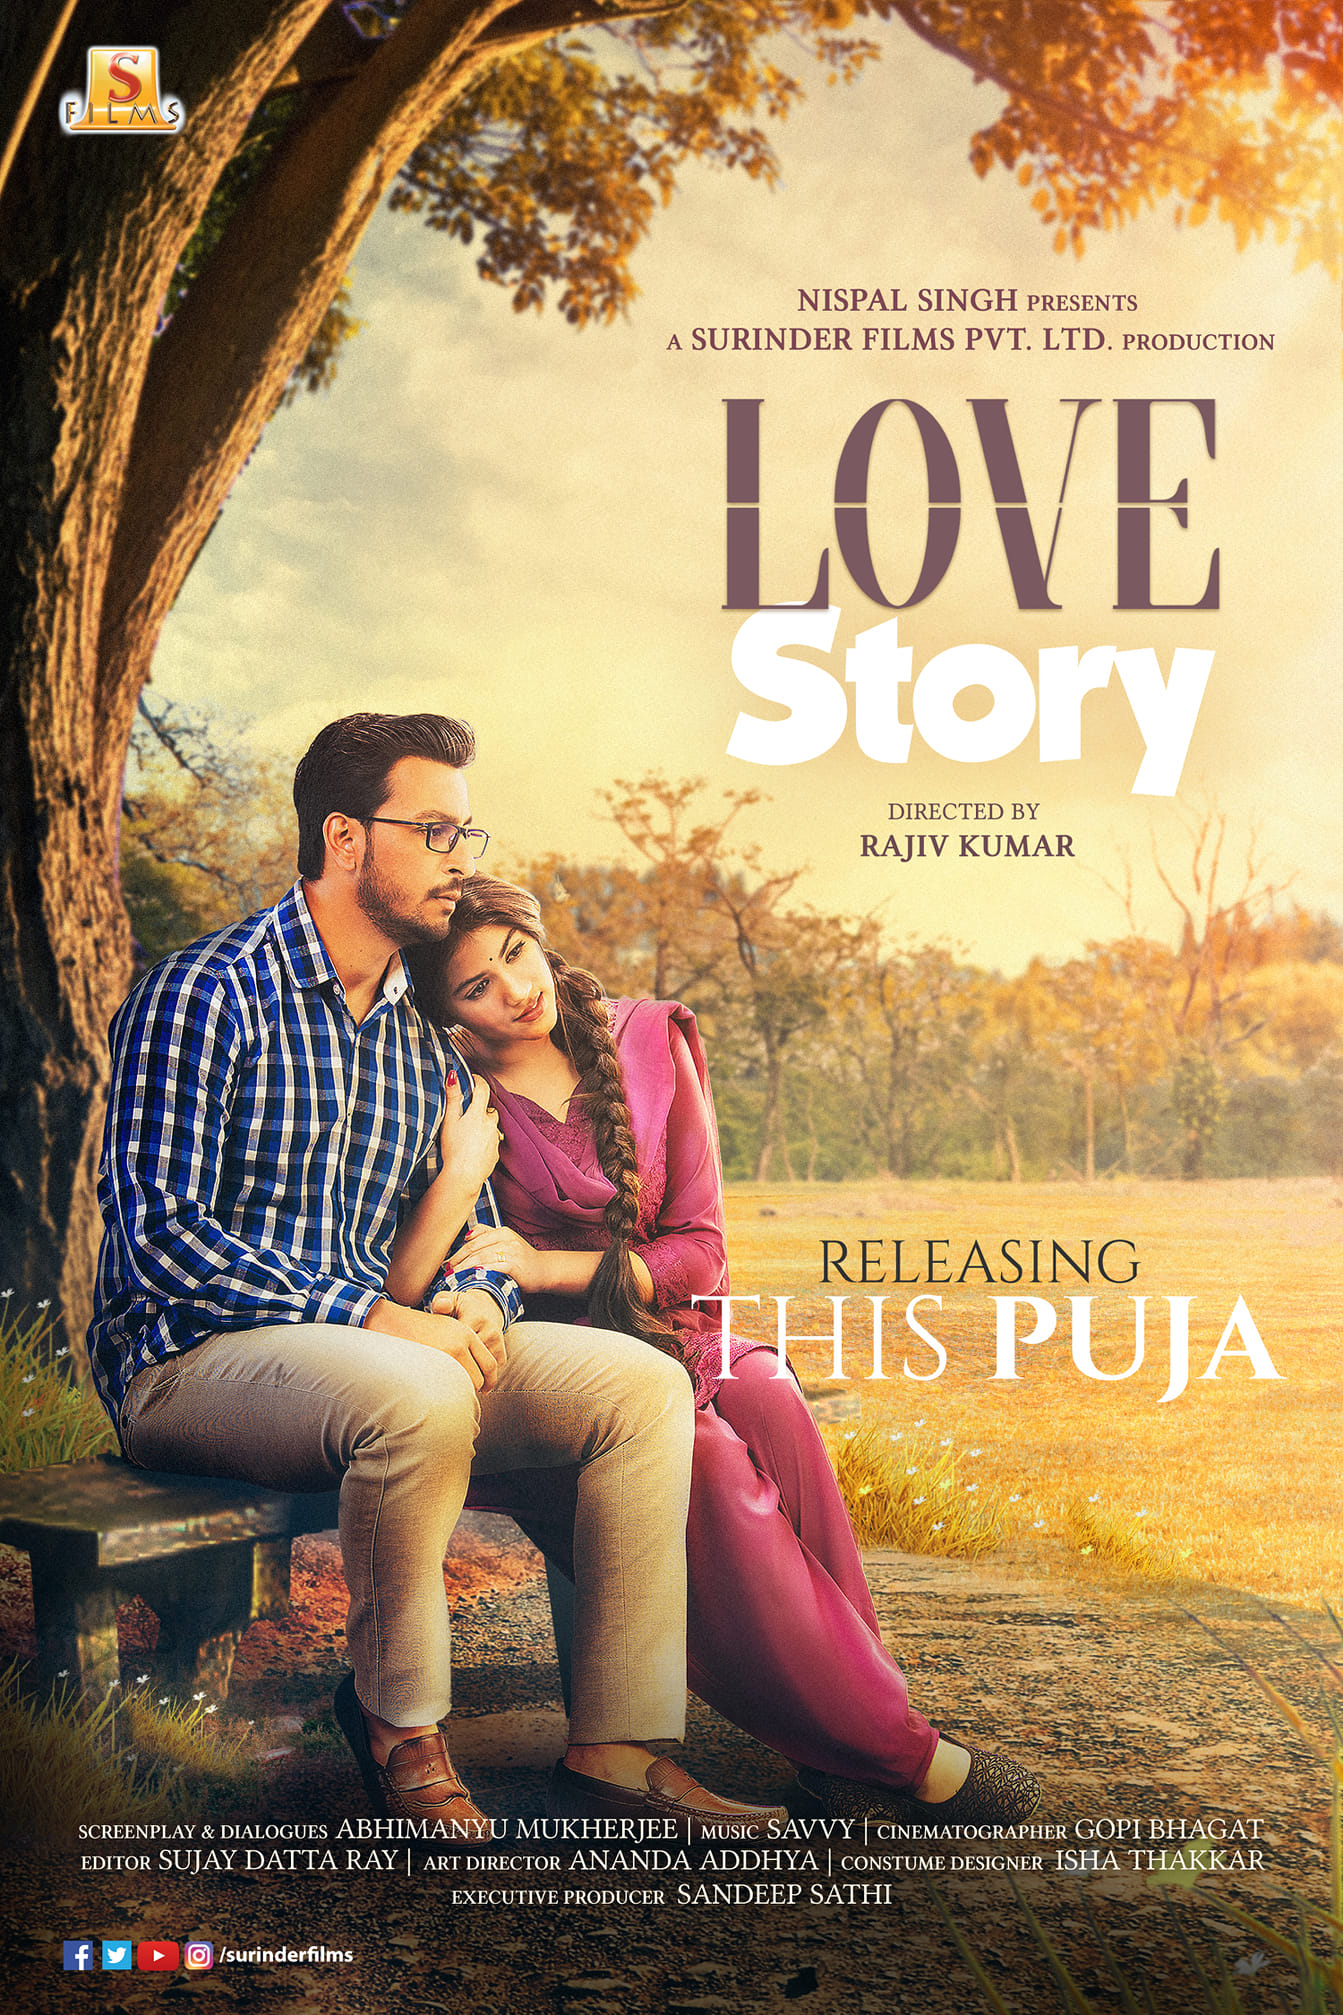 Love Story 2020 Bengali Movie 720p HDRip 1GB x264 MKV *Exclusive*